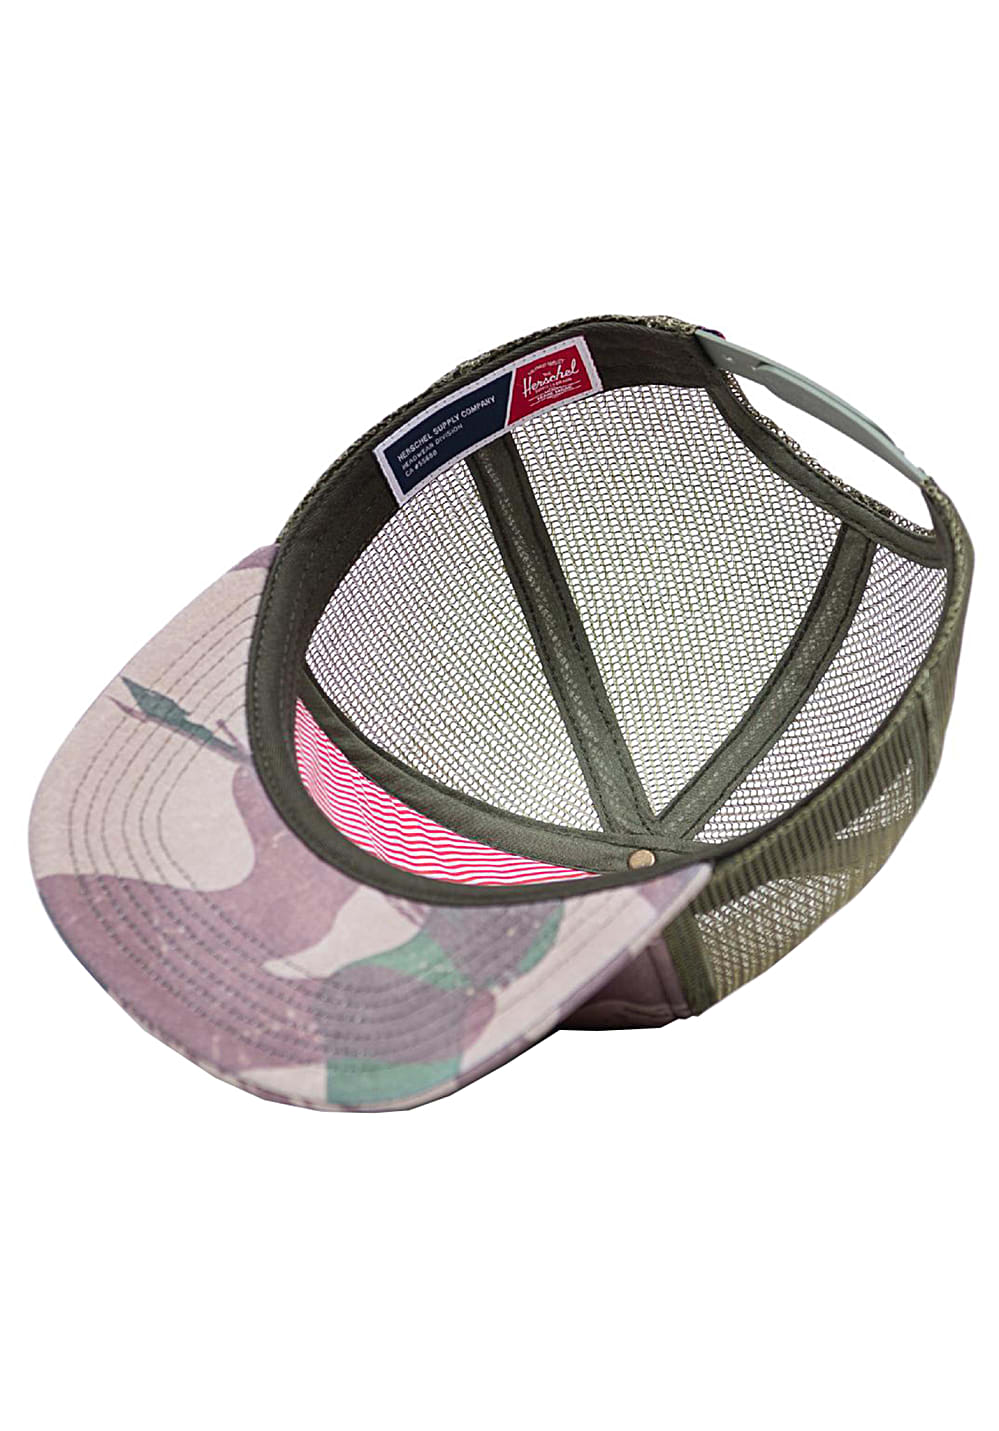 4fdc7116a0335 Next. Herschel SUPPLY CO. Whaler Mesh - Trucker Cap. €24.95. incl. VAT plus  shipping costs